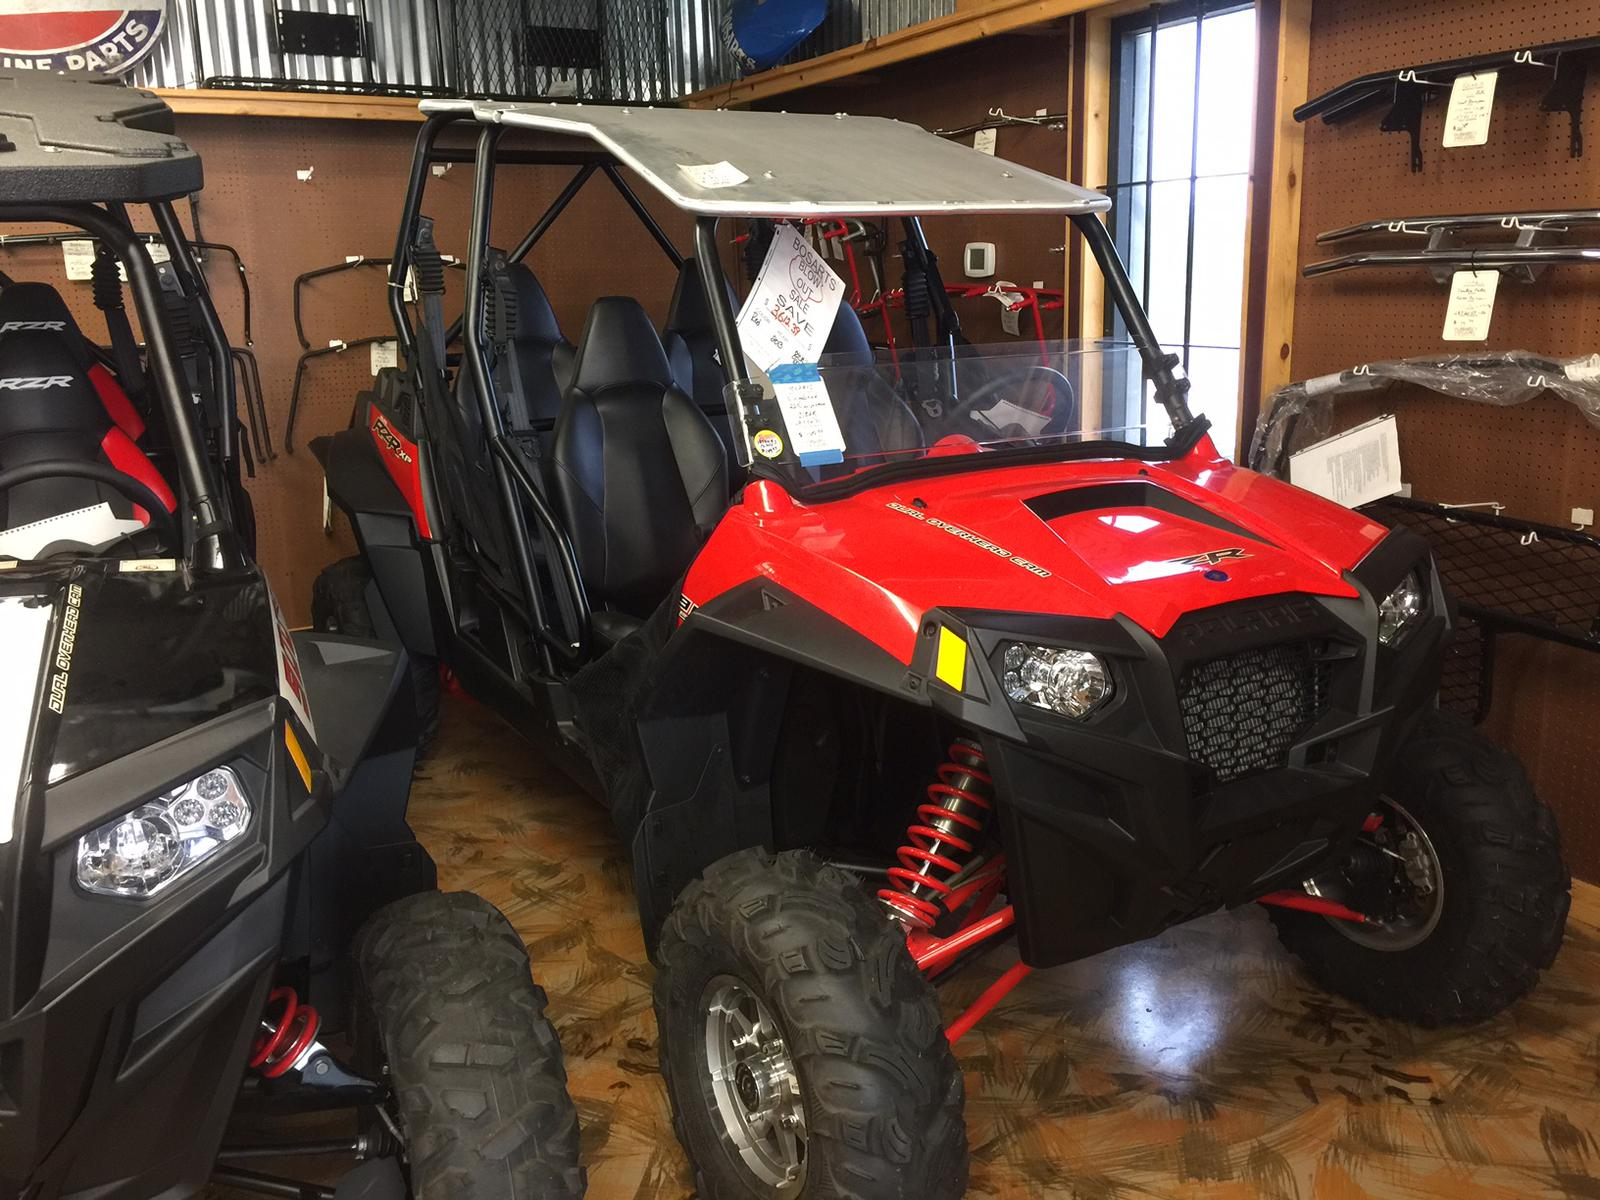 small resolution of 2013 polaris industries rzr xp 4 900 for sale in victoria tx victoria cycle shop bosart s polaris 800 794 2619